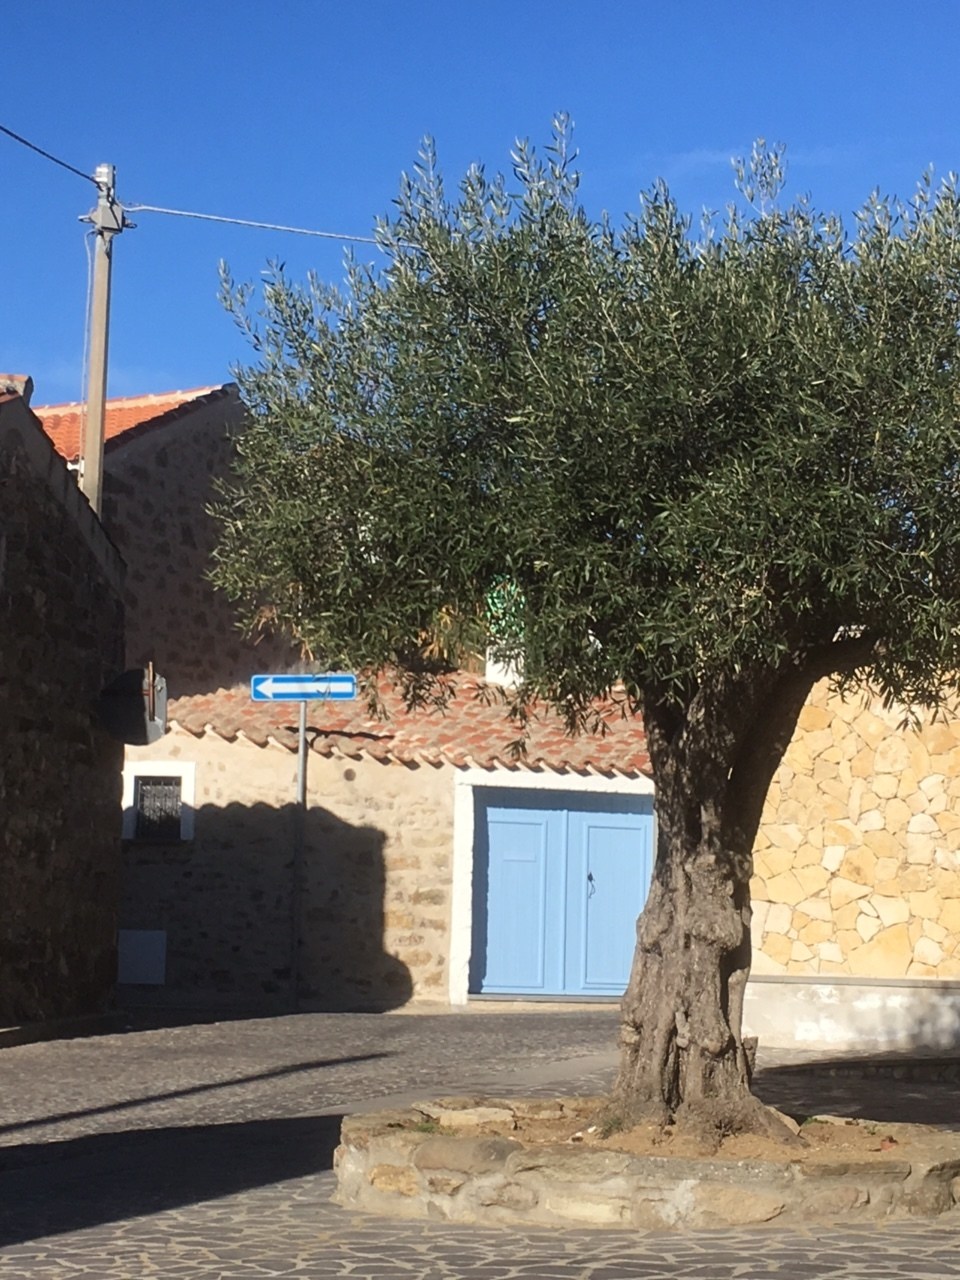 We live at Via Valenza 11, Mogorella (OR), the house with the blue door.